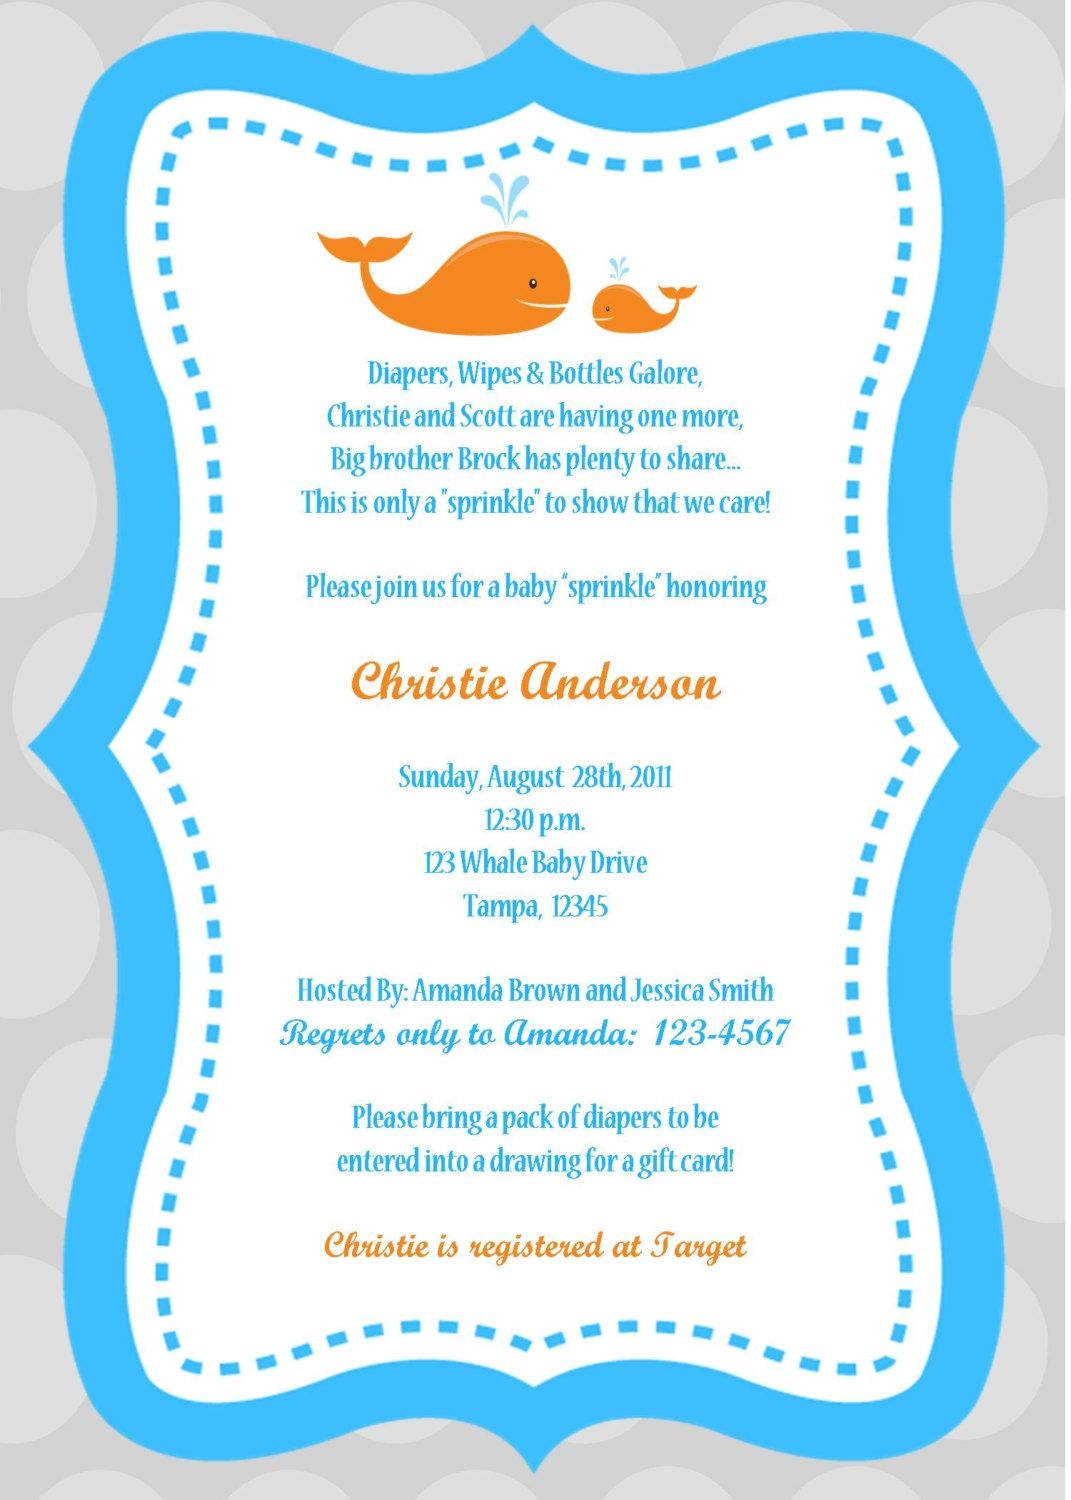 Baby Shower Invitation Wording For Male And Female | http://atwebry ...